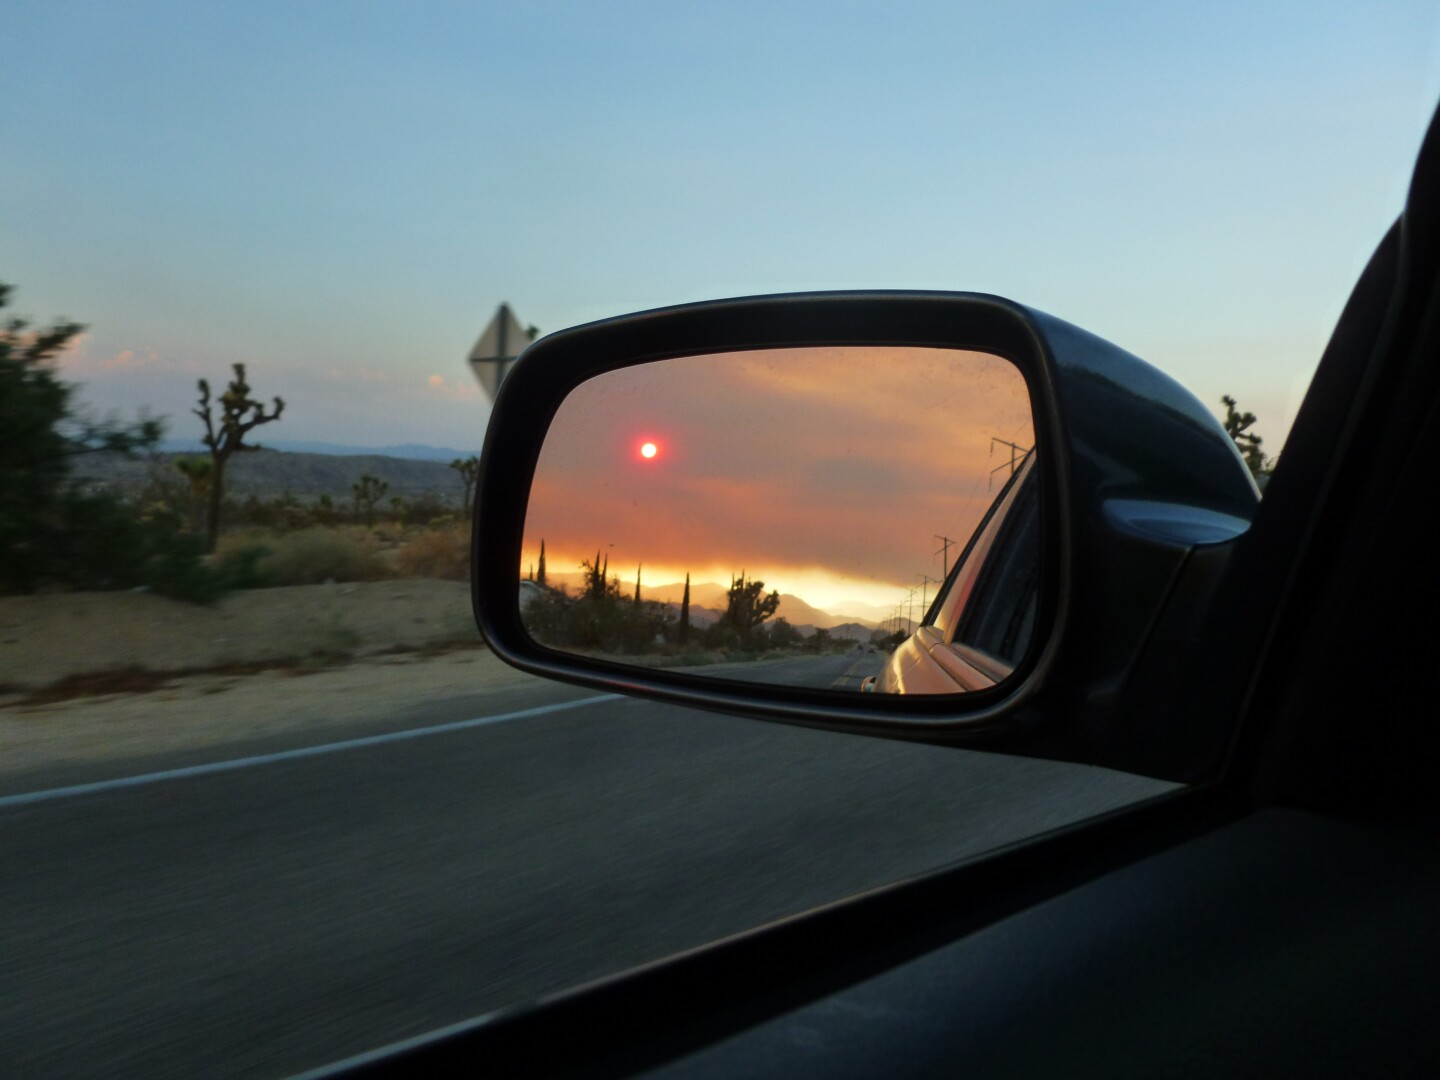 The reflection of a red sun can be seen on a car's side mirror.